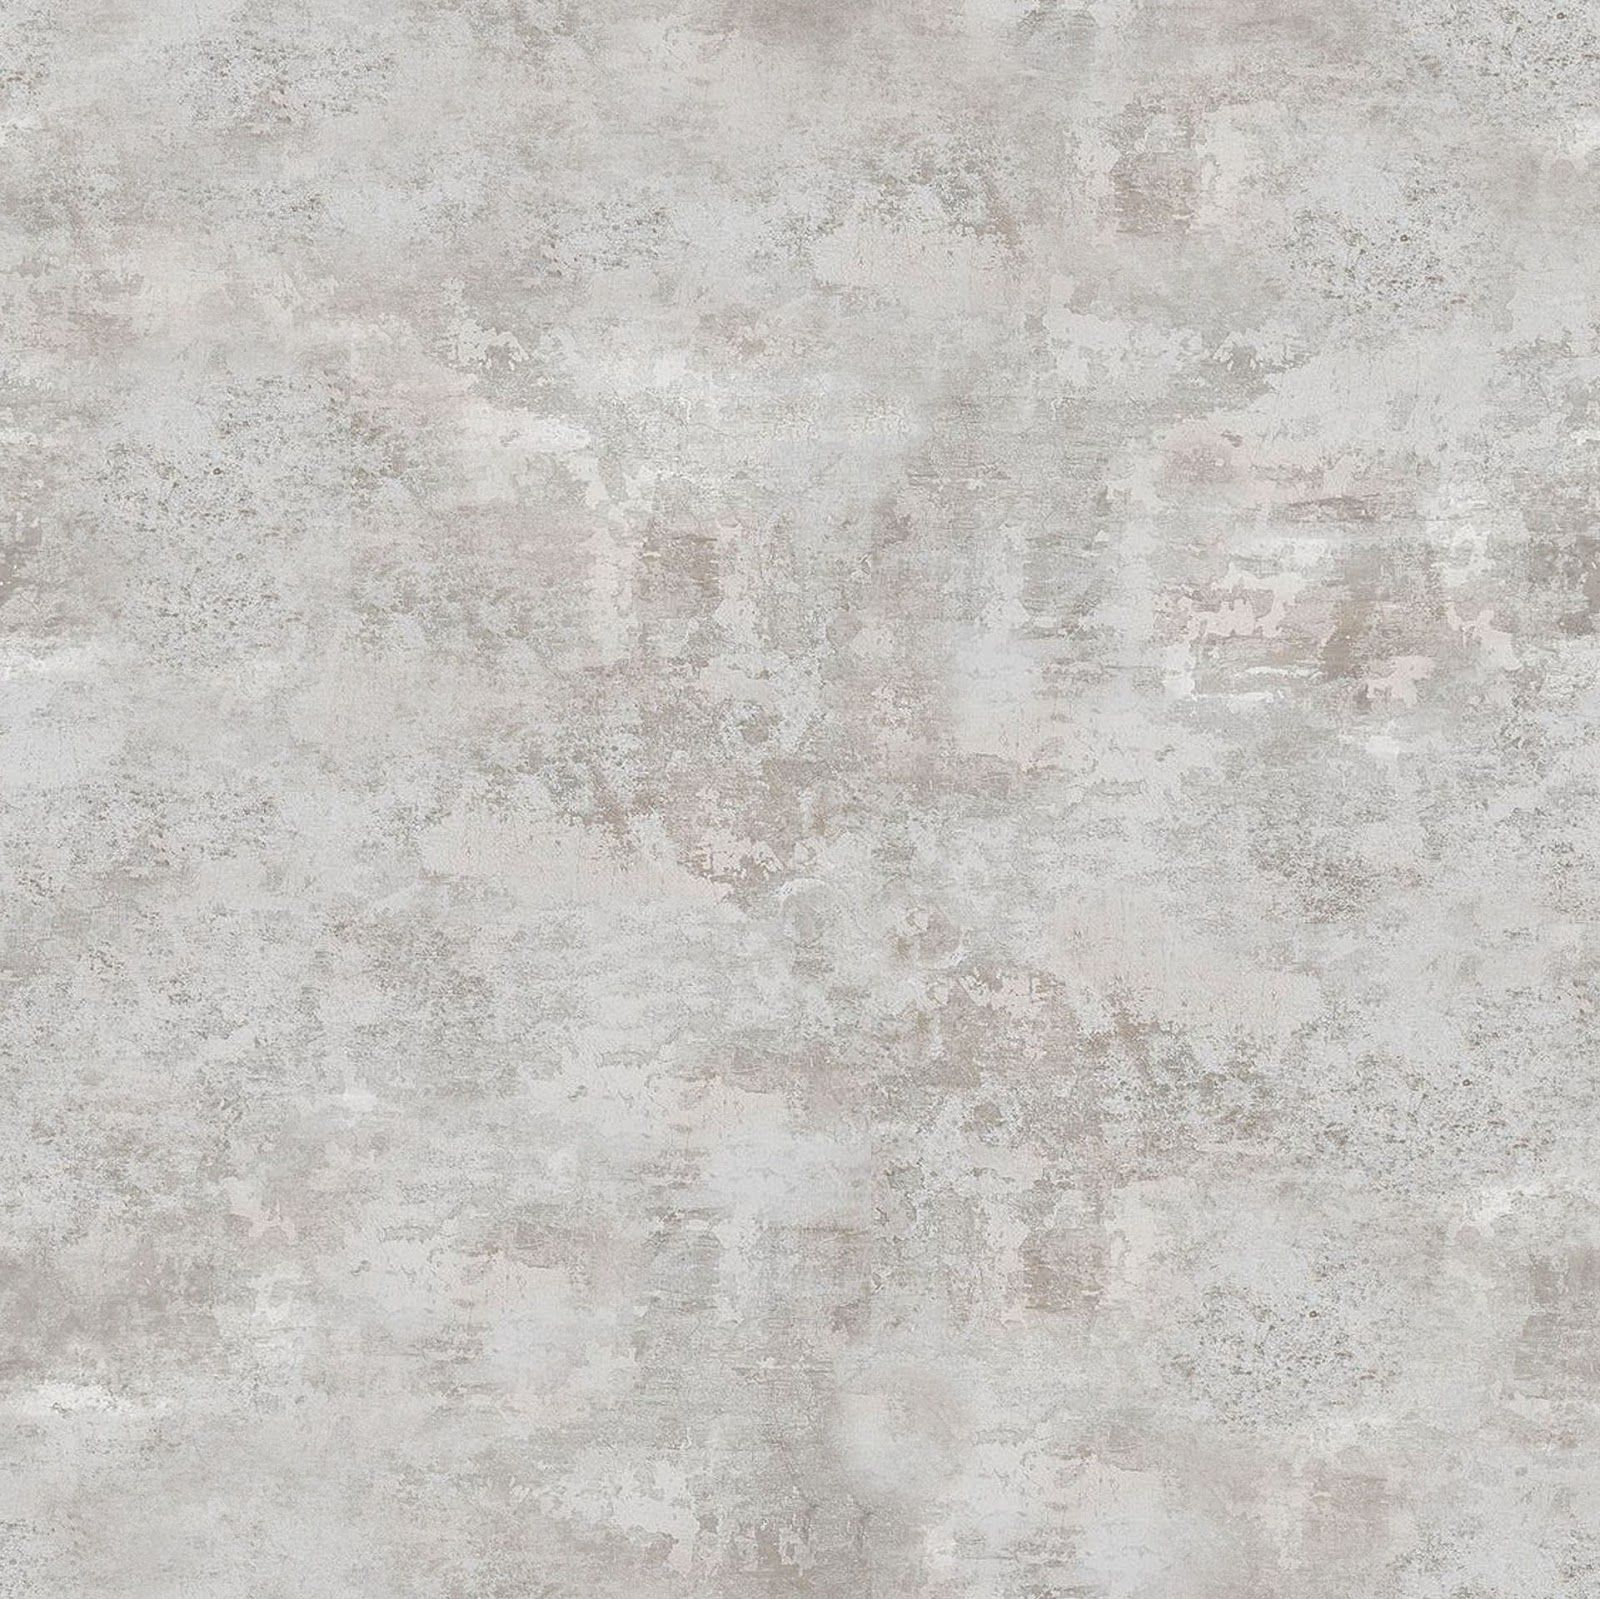 Texturing Concrete Walls Seamless Dirty Concrete Wall Texture Texturise Free